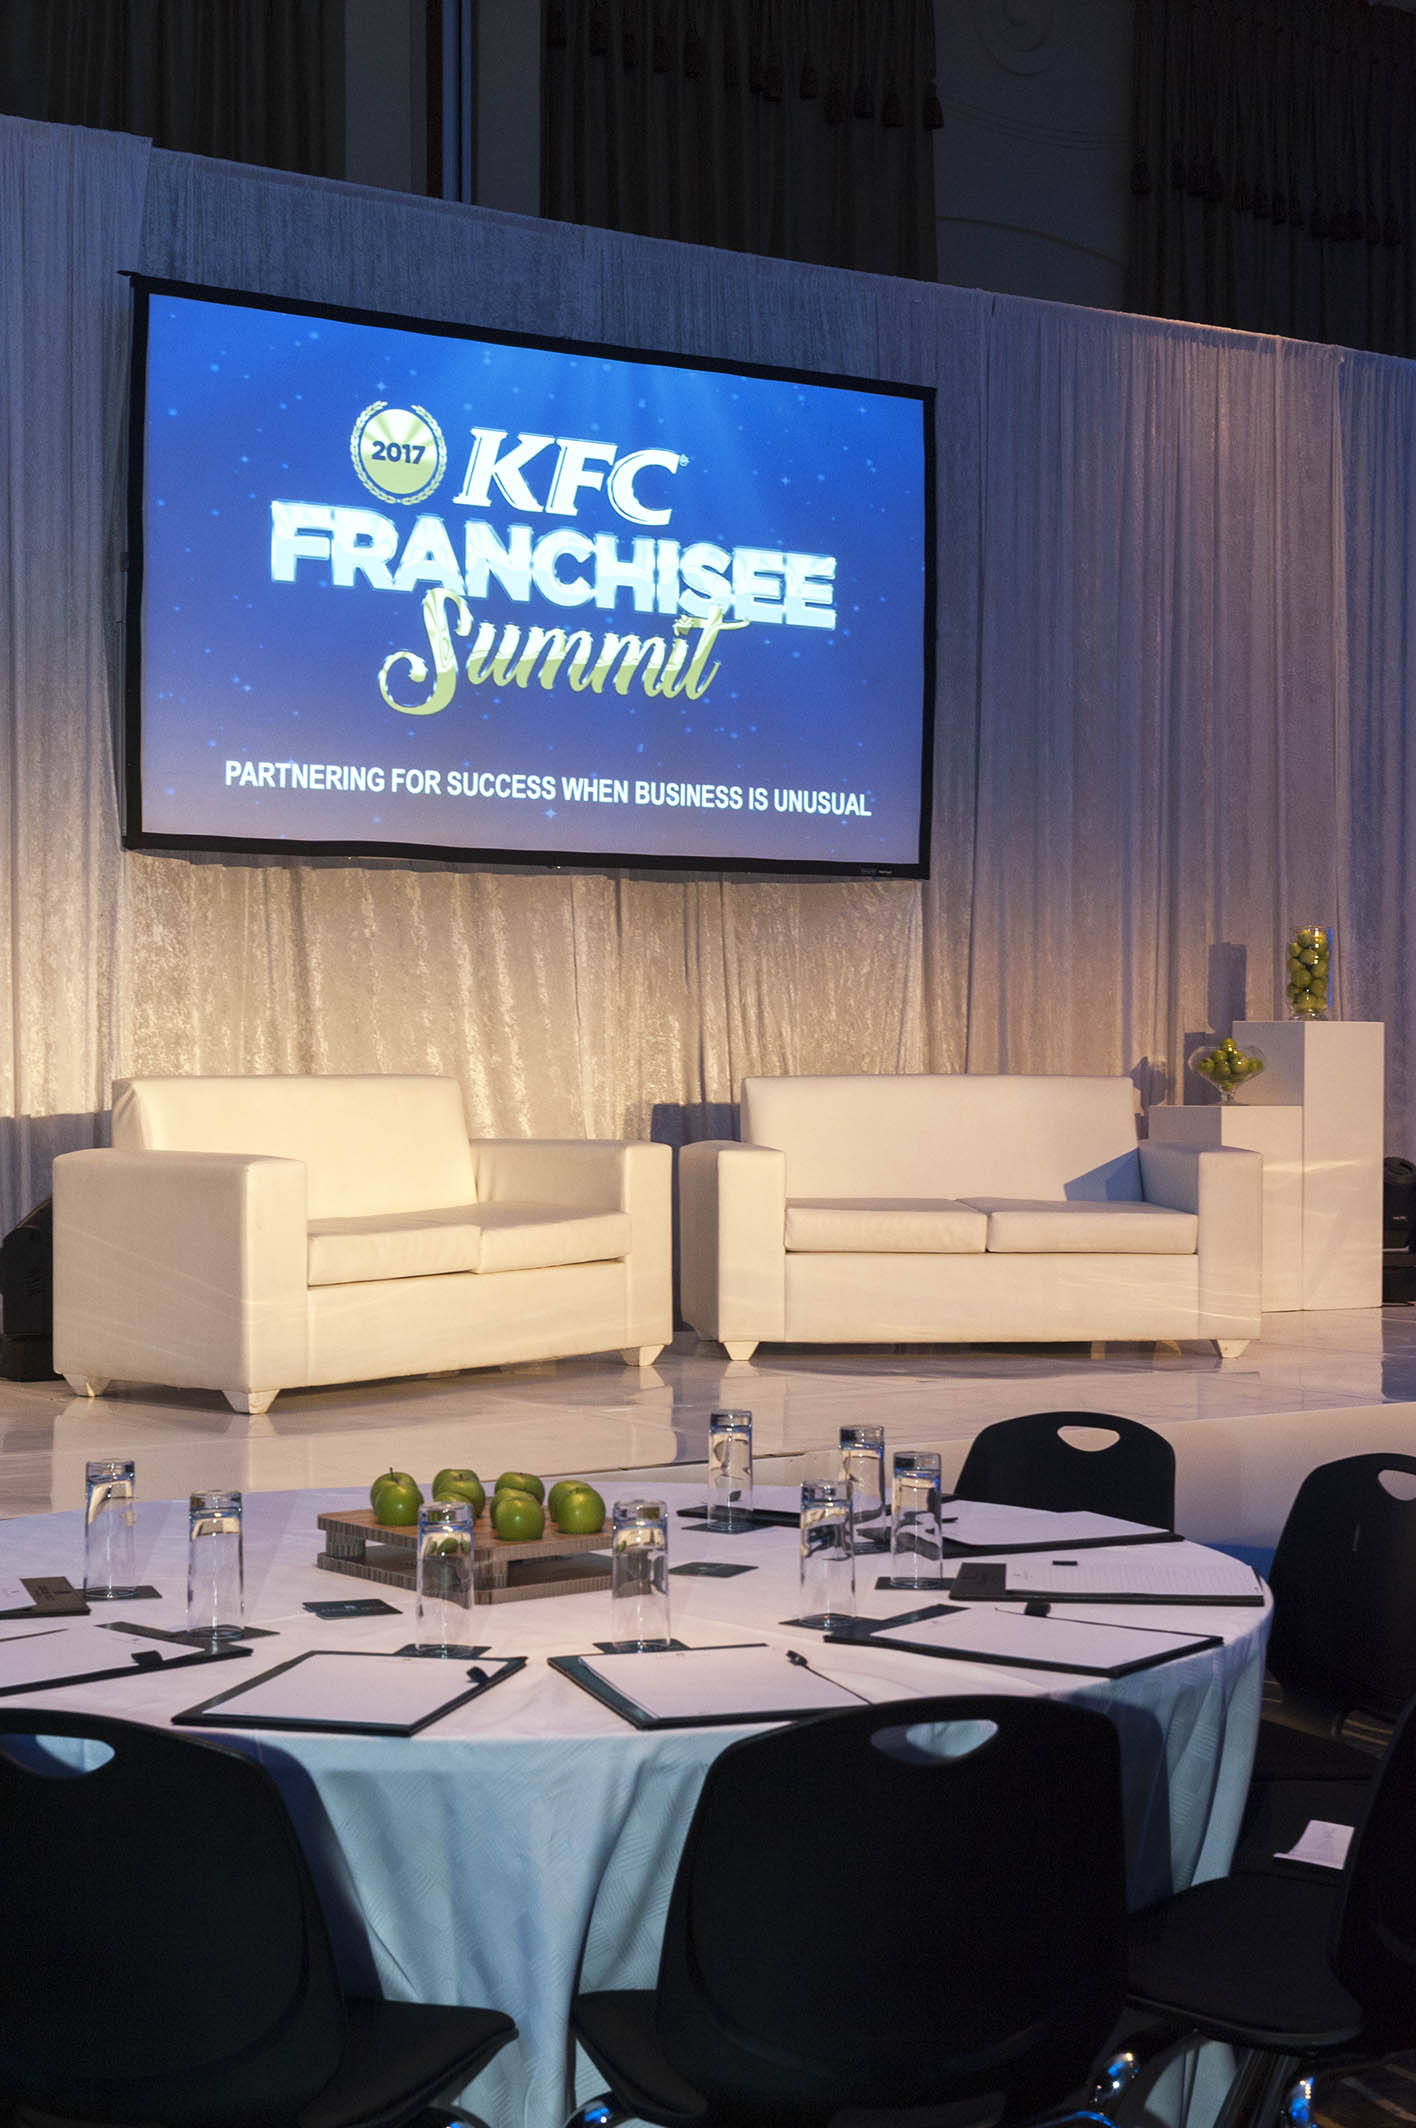 KFC franchisee summit